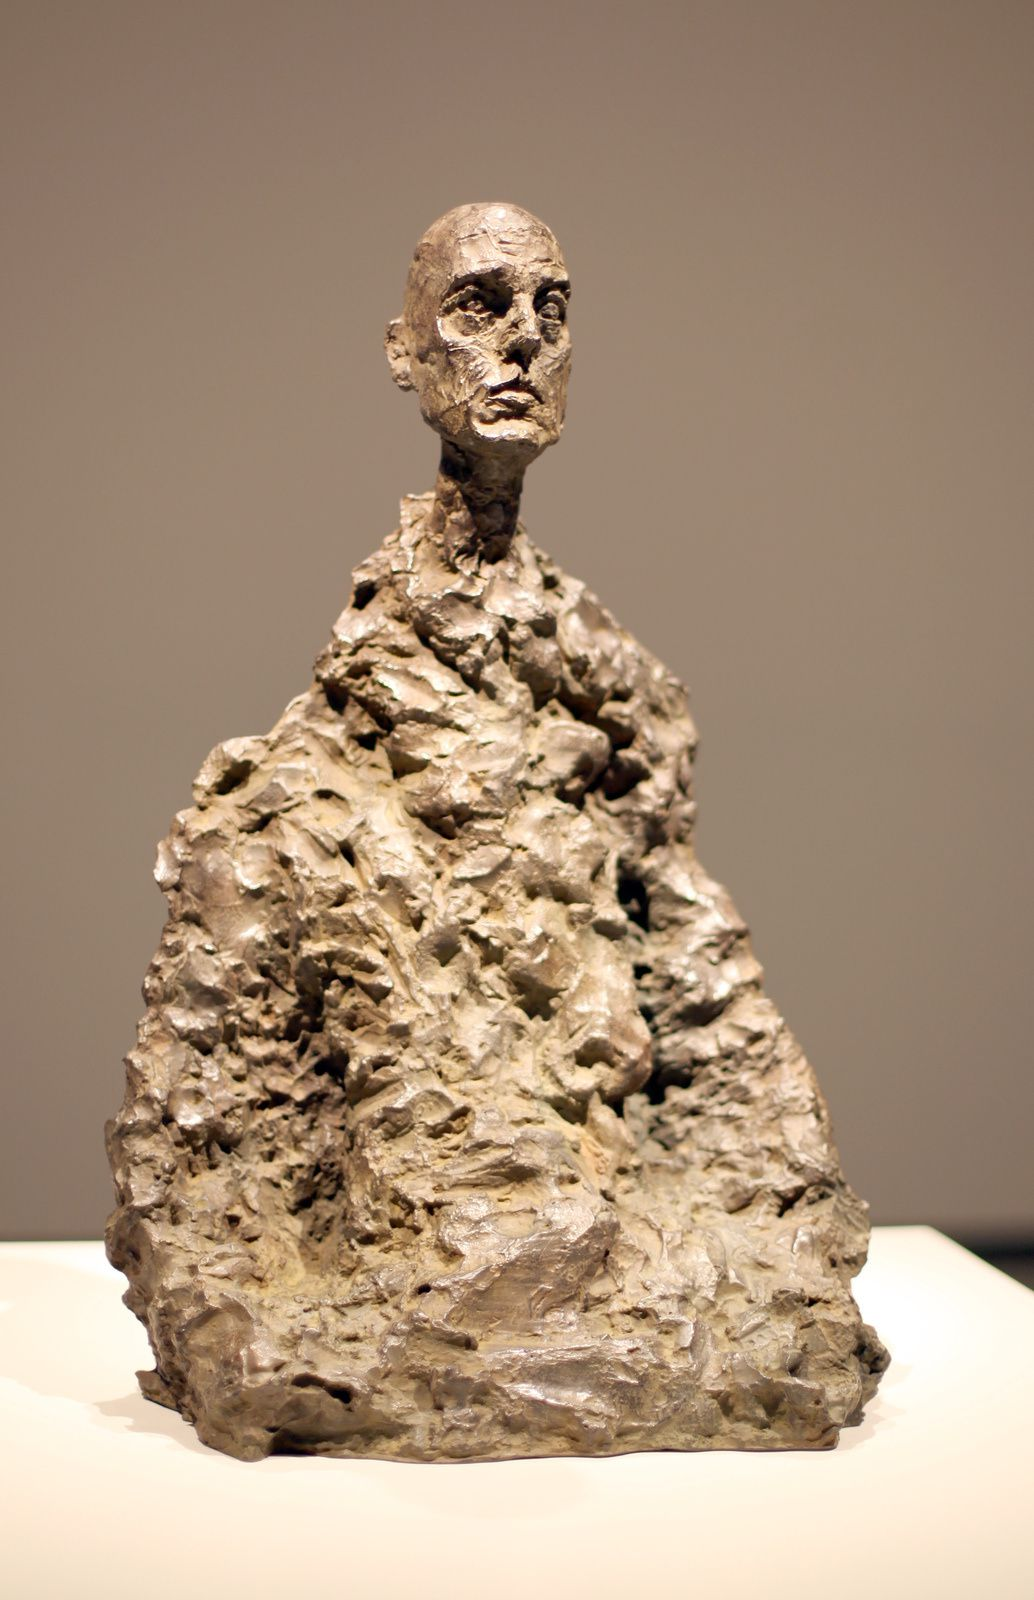 """Buste d'Homme assis (Lotar III)"", 1965 de Alberto GIACOMETTI - Courtesy FONDATION LOUIS VUITTON © Photo Éric Simon"